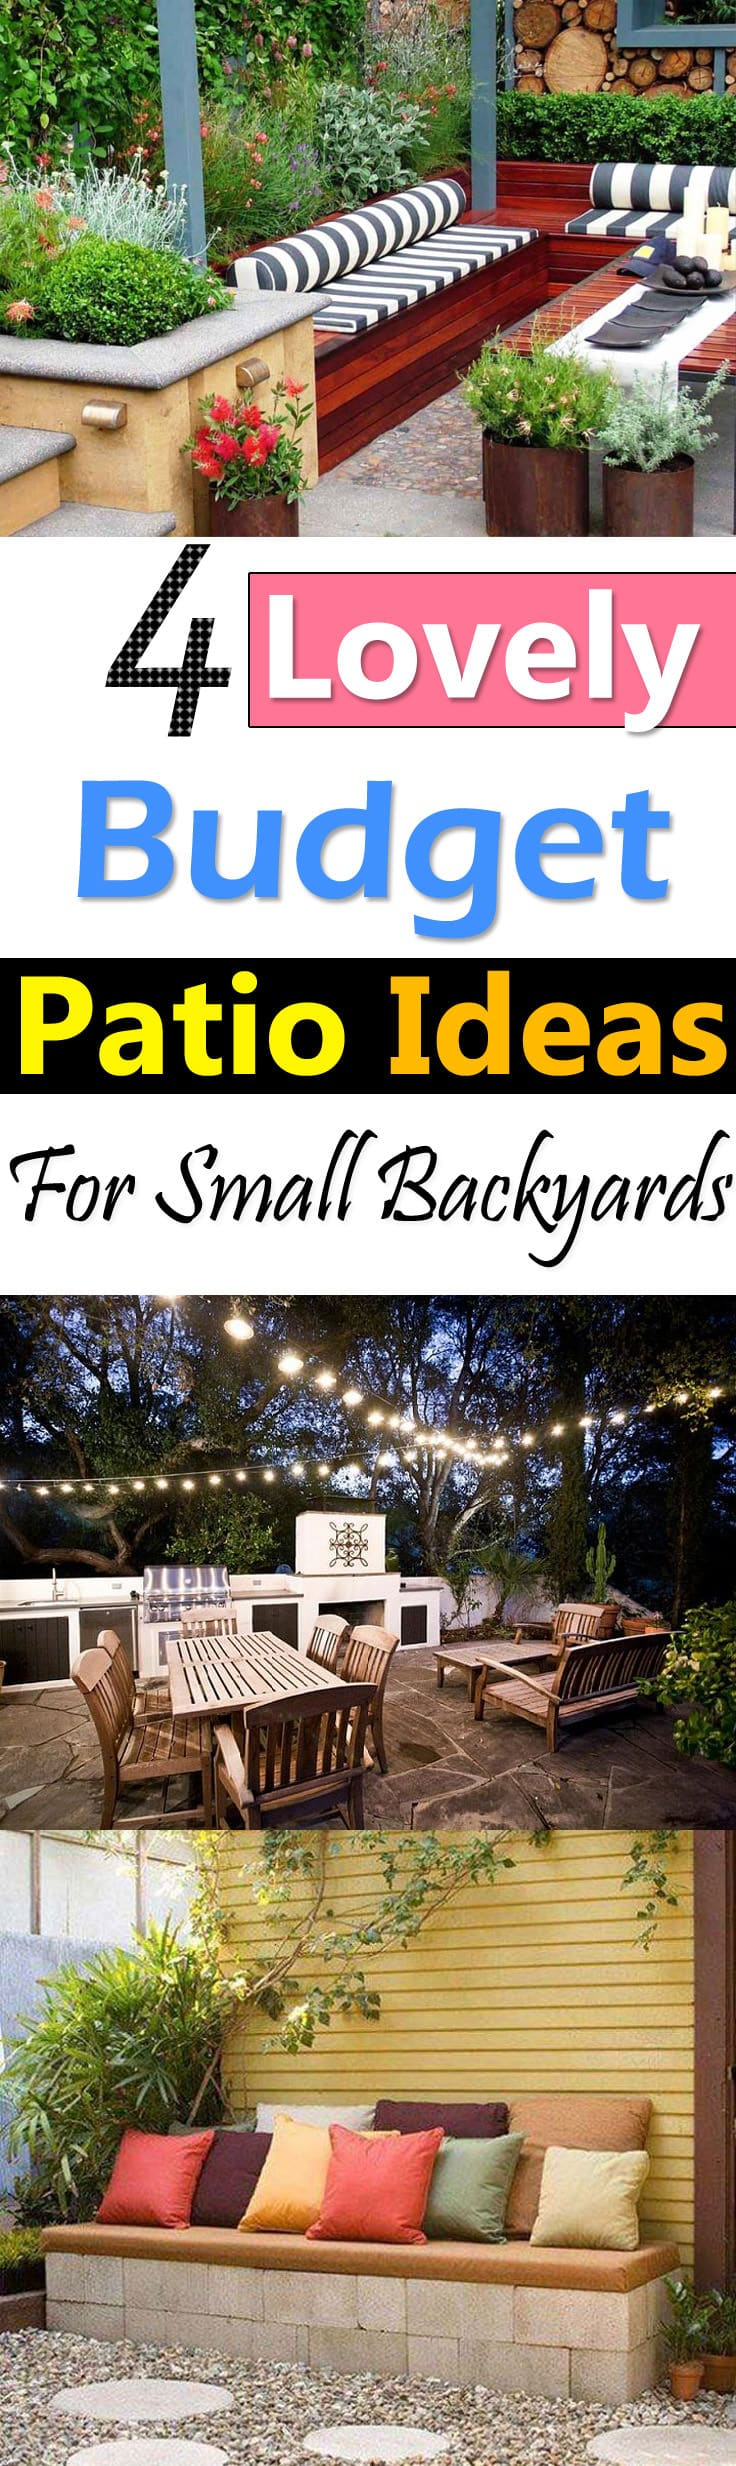 Soulful Small Backyards Balcony Garden Web Backyard Garden Patio Ideas With Se Patio Ideas You Can Create A Patio Area At Budget Patio Ideas outdoor Backyard Garden Patio